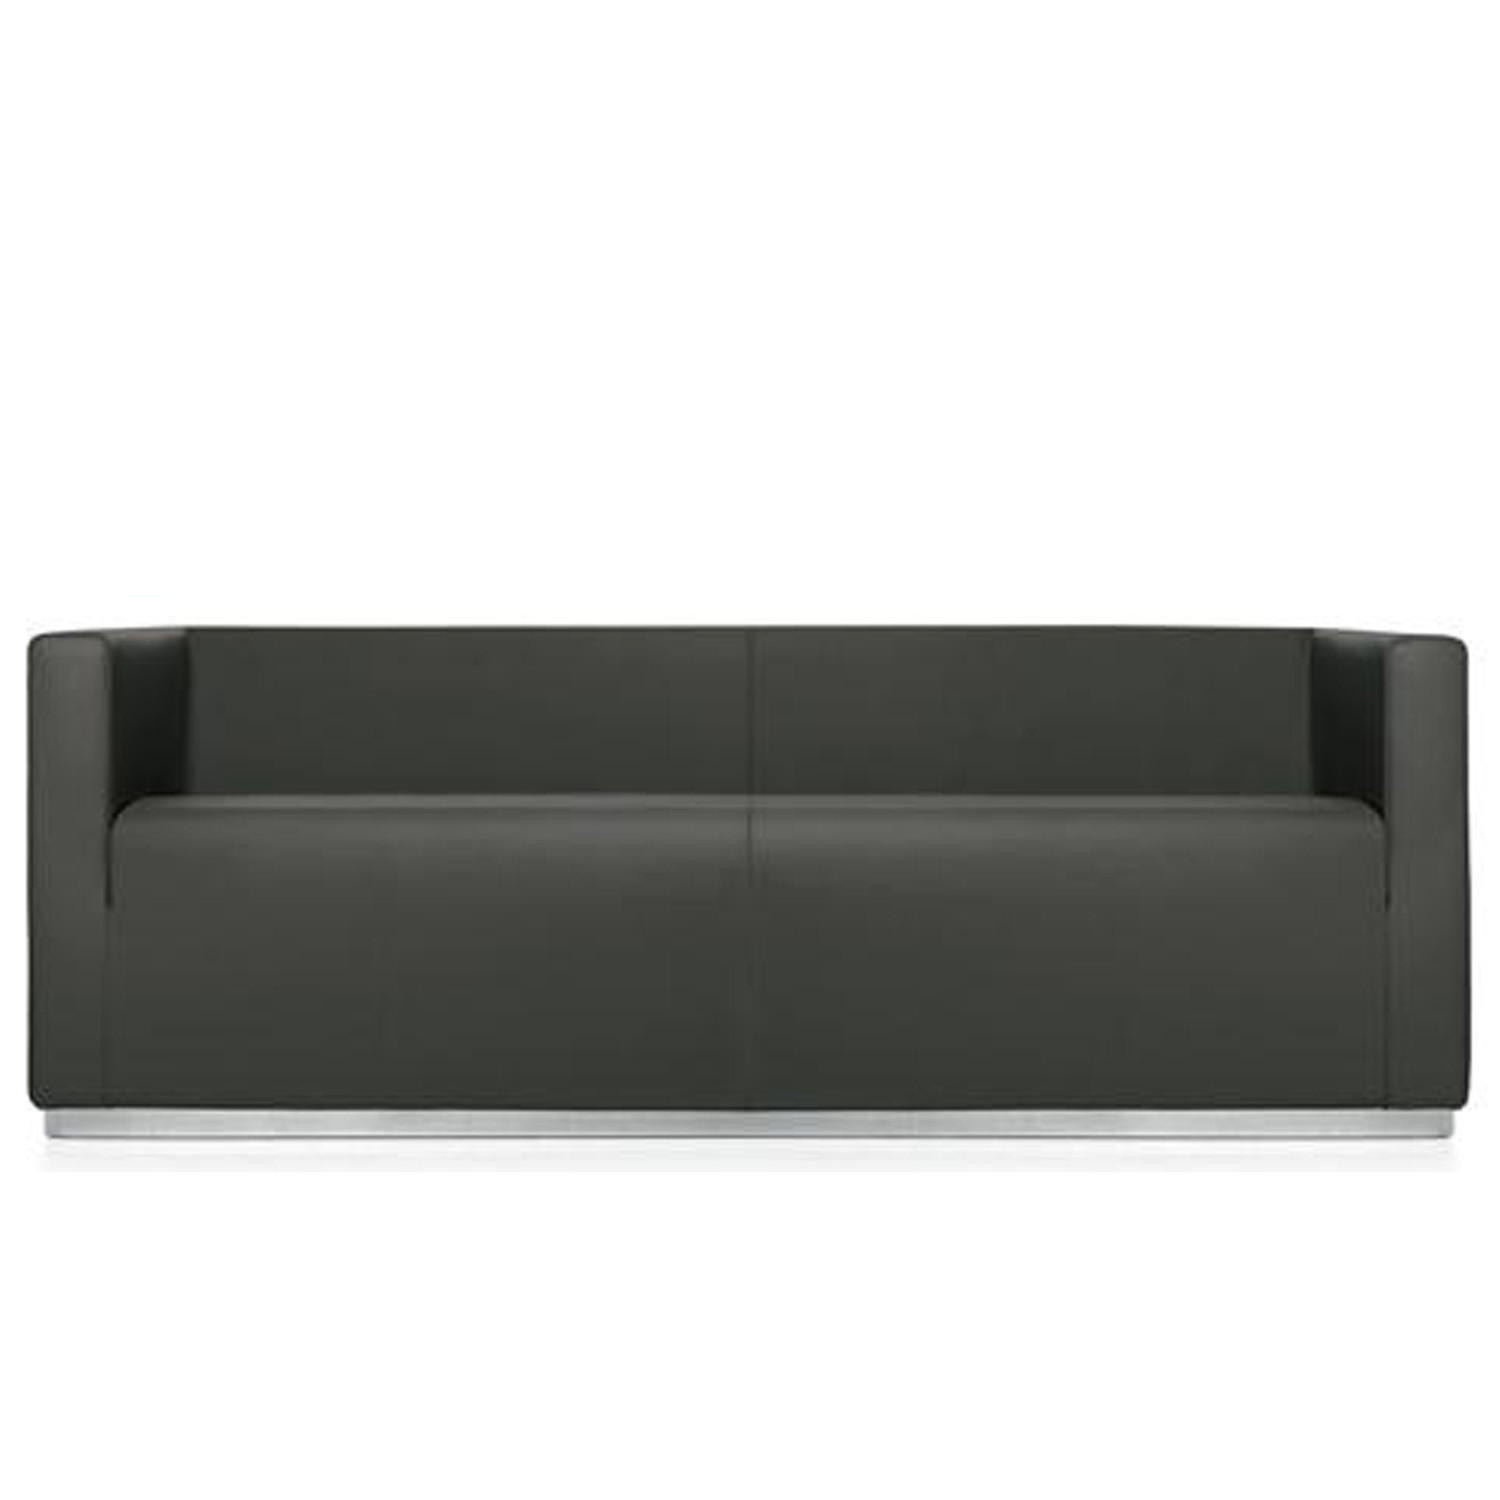 Park Sofa by ICF Spa